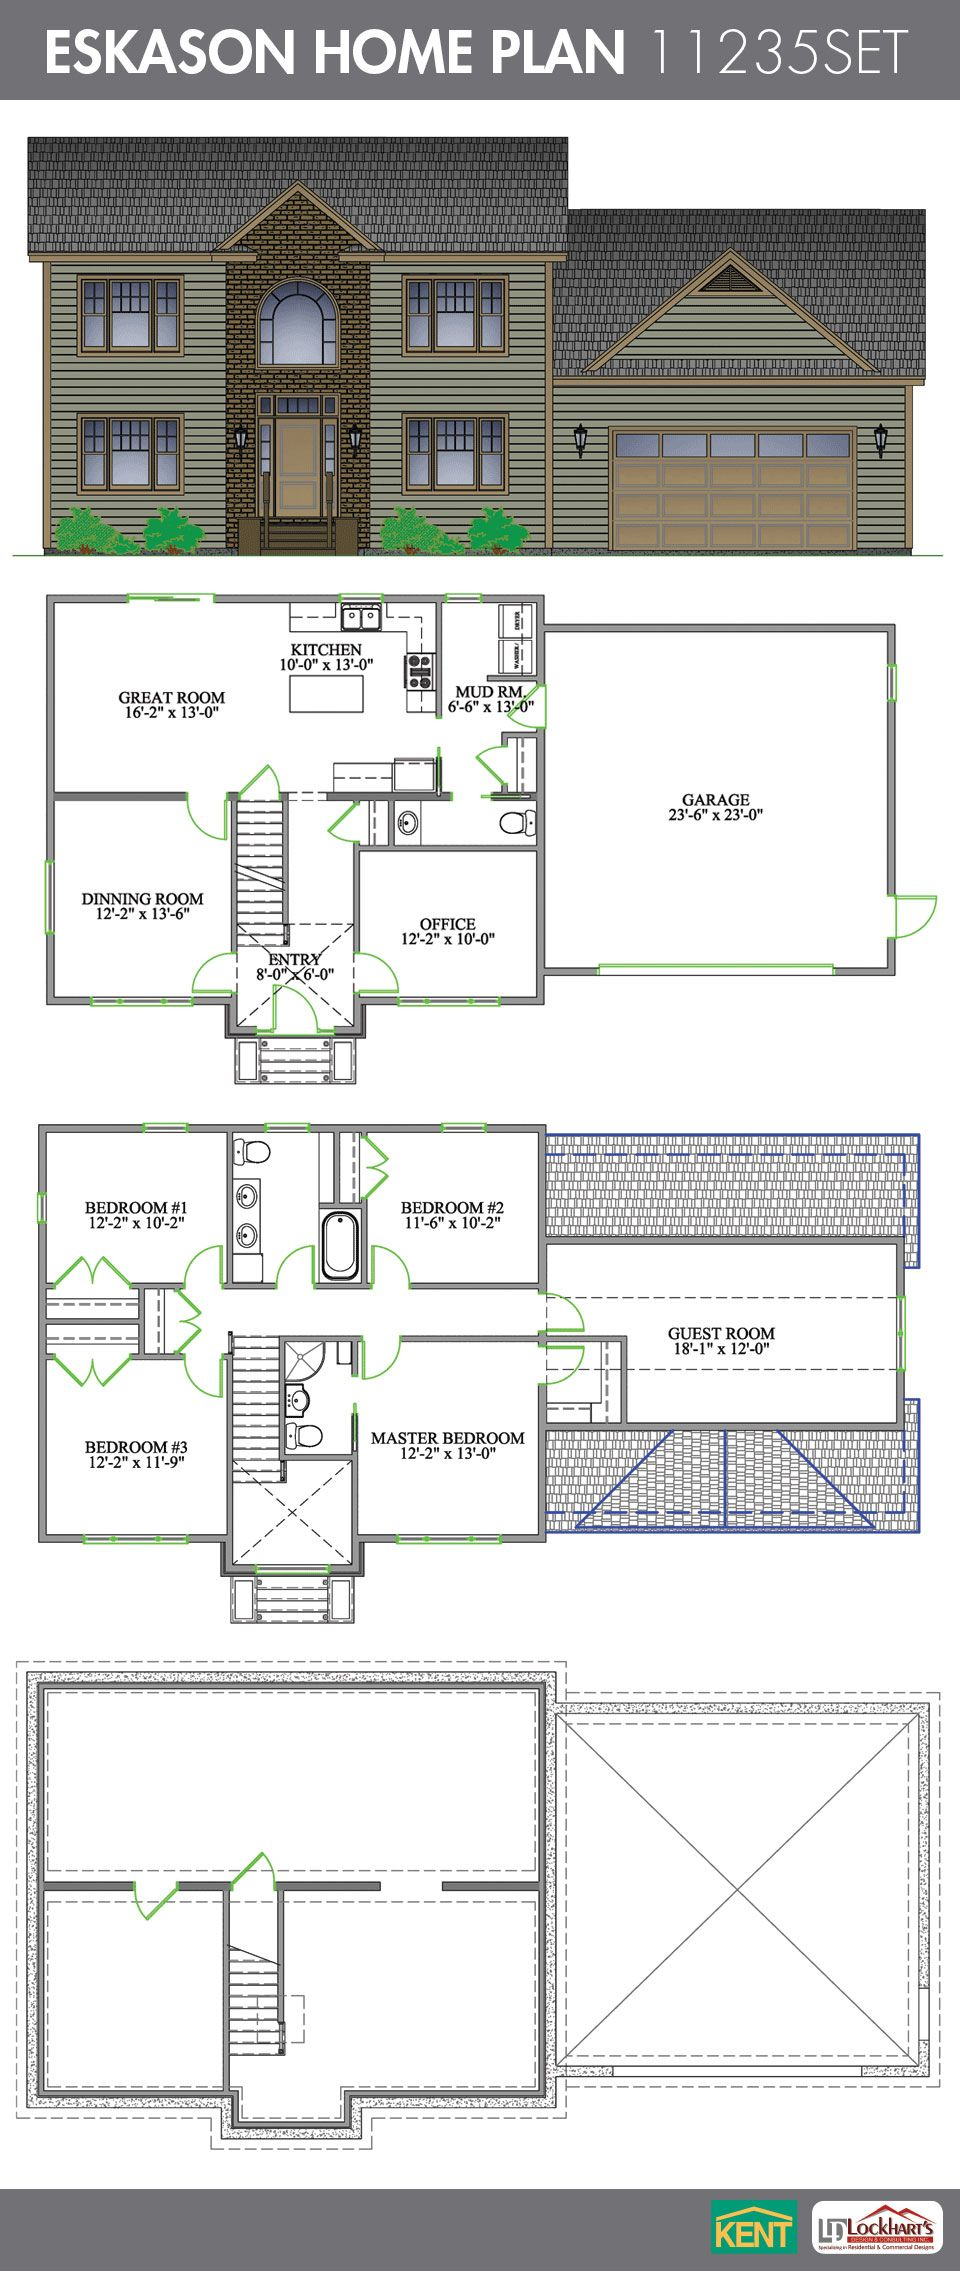 Eskason Home Plan Master Bedroom Plans Floor Plans Floor Plan Design